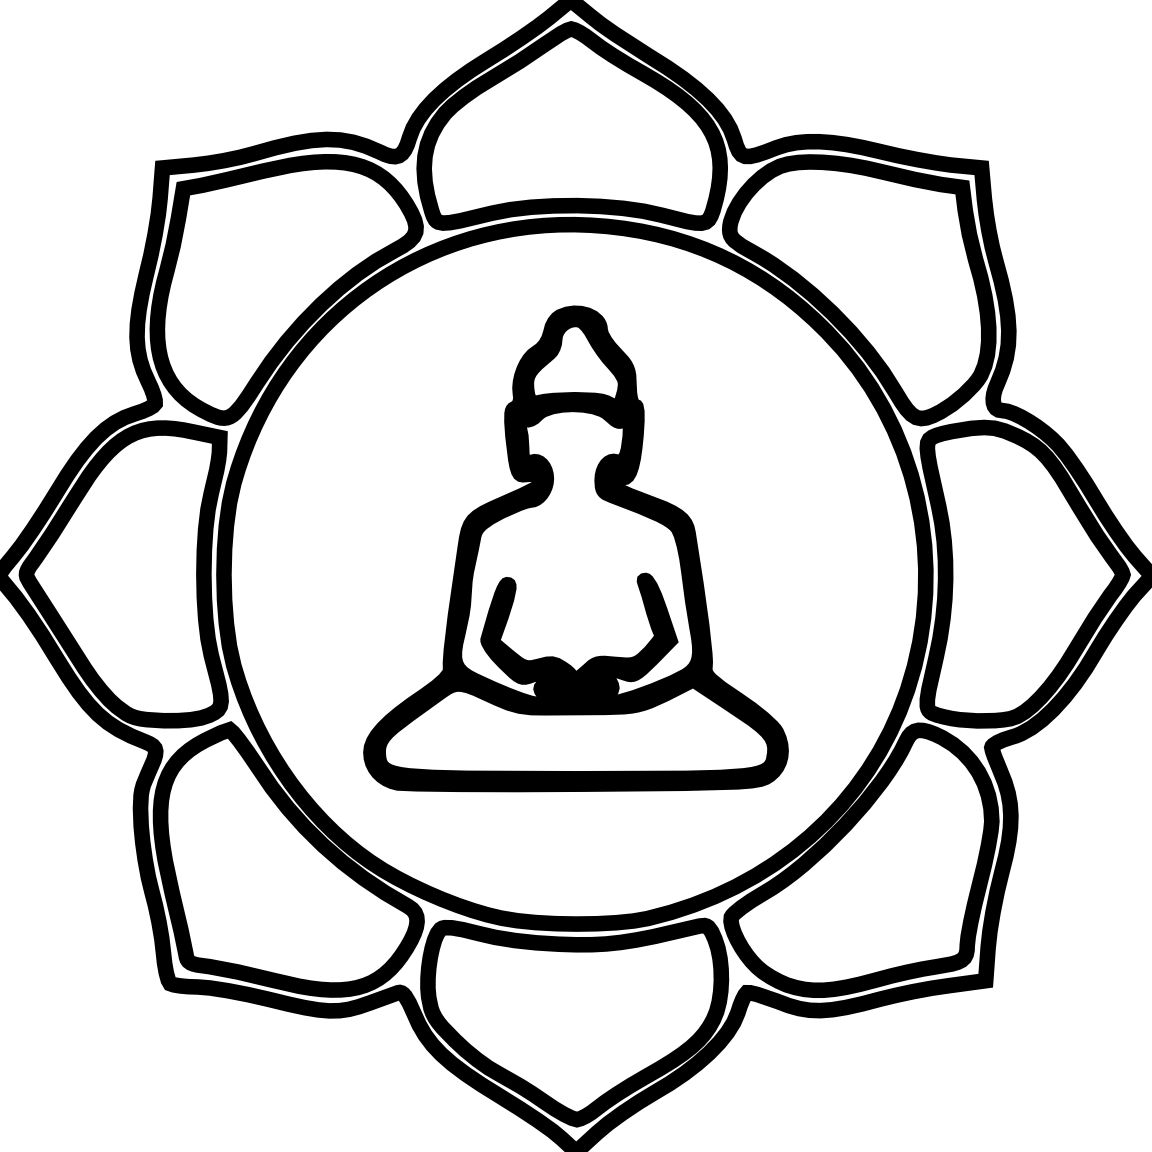 Flower color black white. Buddha clipart illustration vector free download